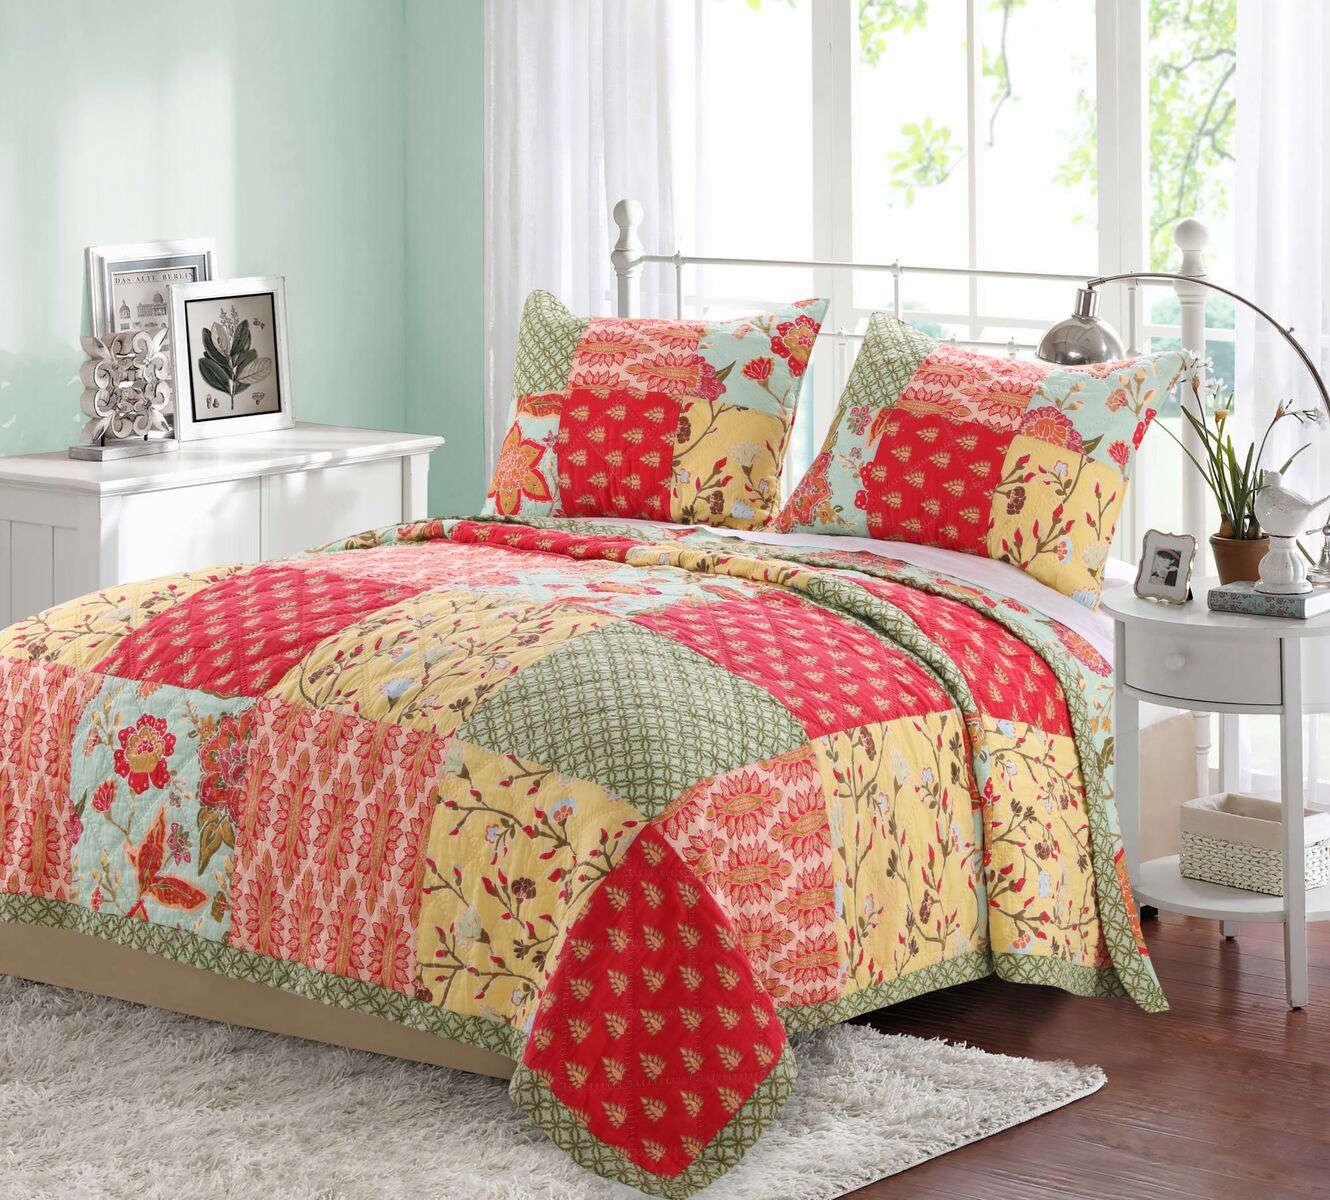 Quilts Bedspreads & Reviews | On Discount Price at Shoppypal.com : quilts for bedspreads - Adamdwight.com